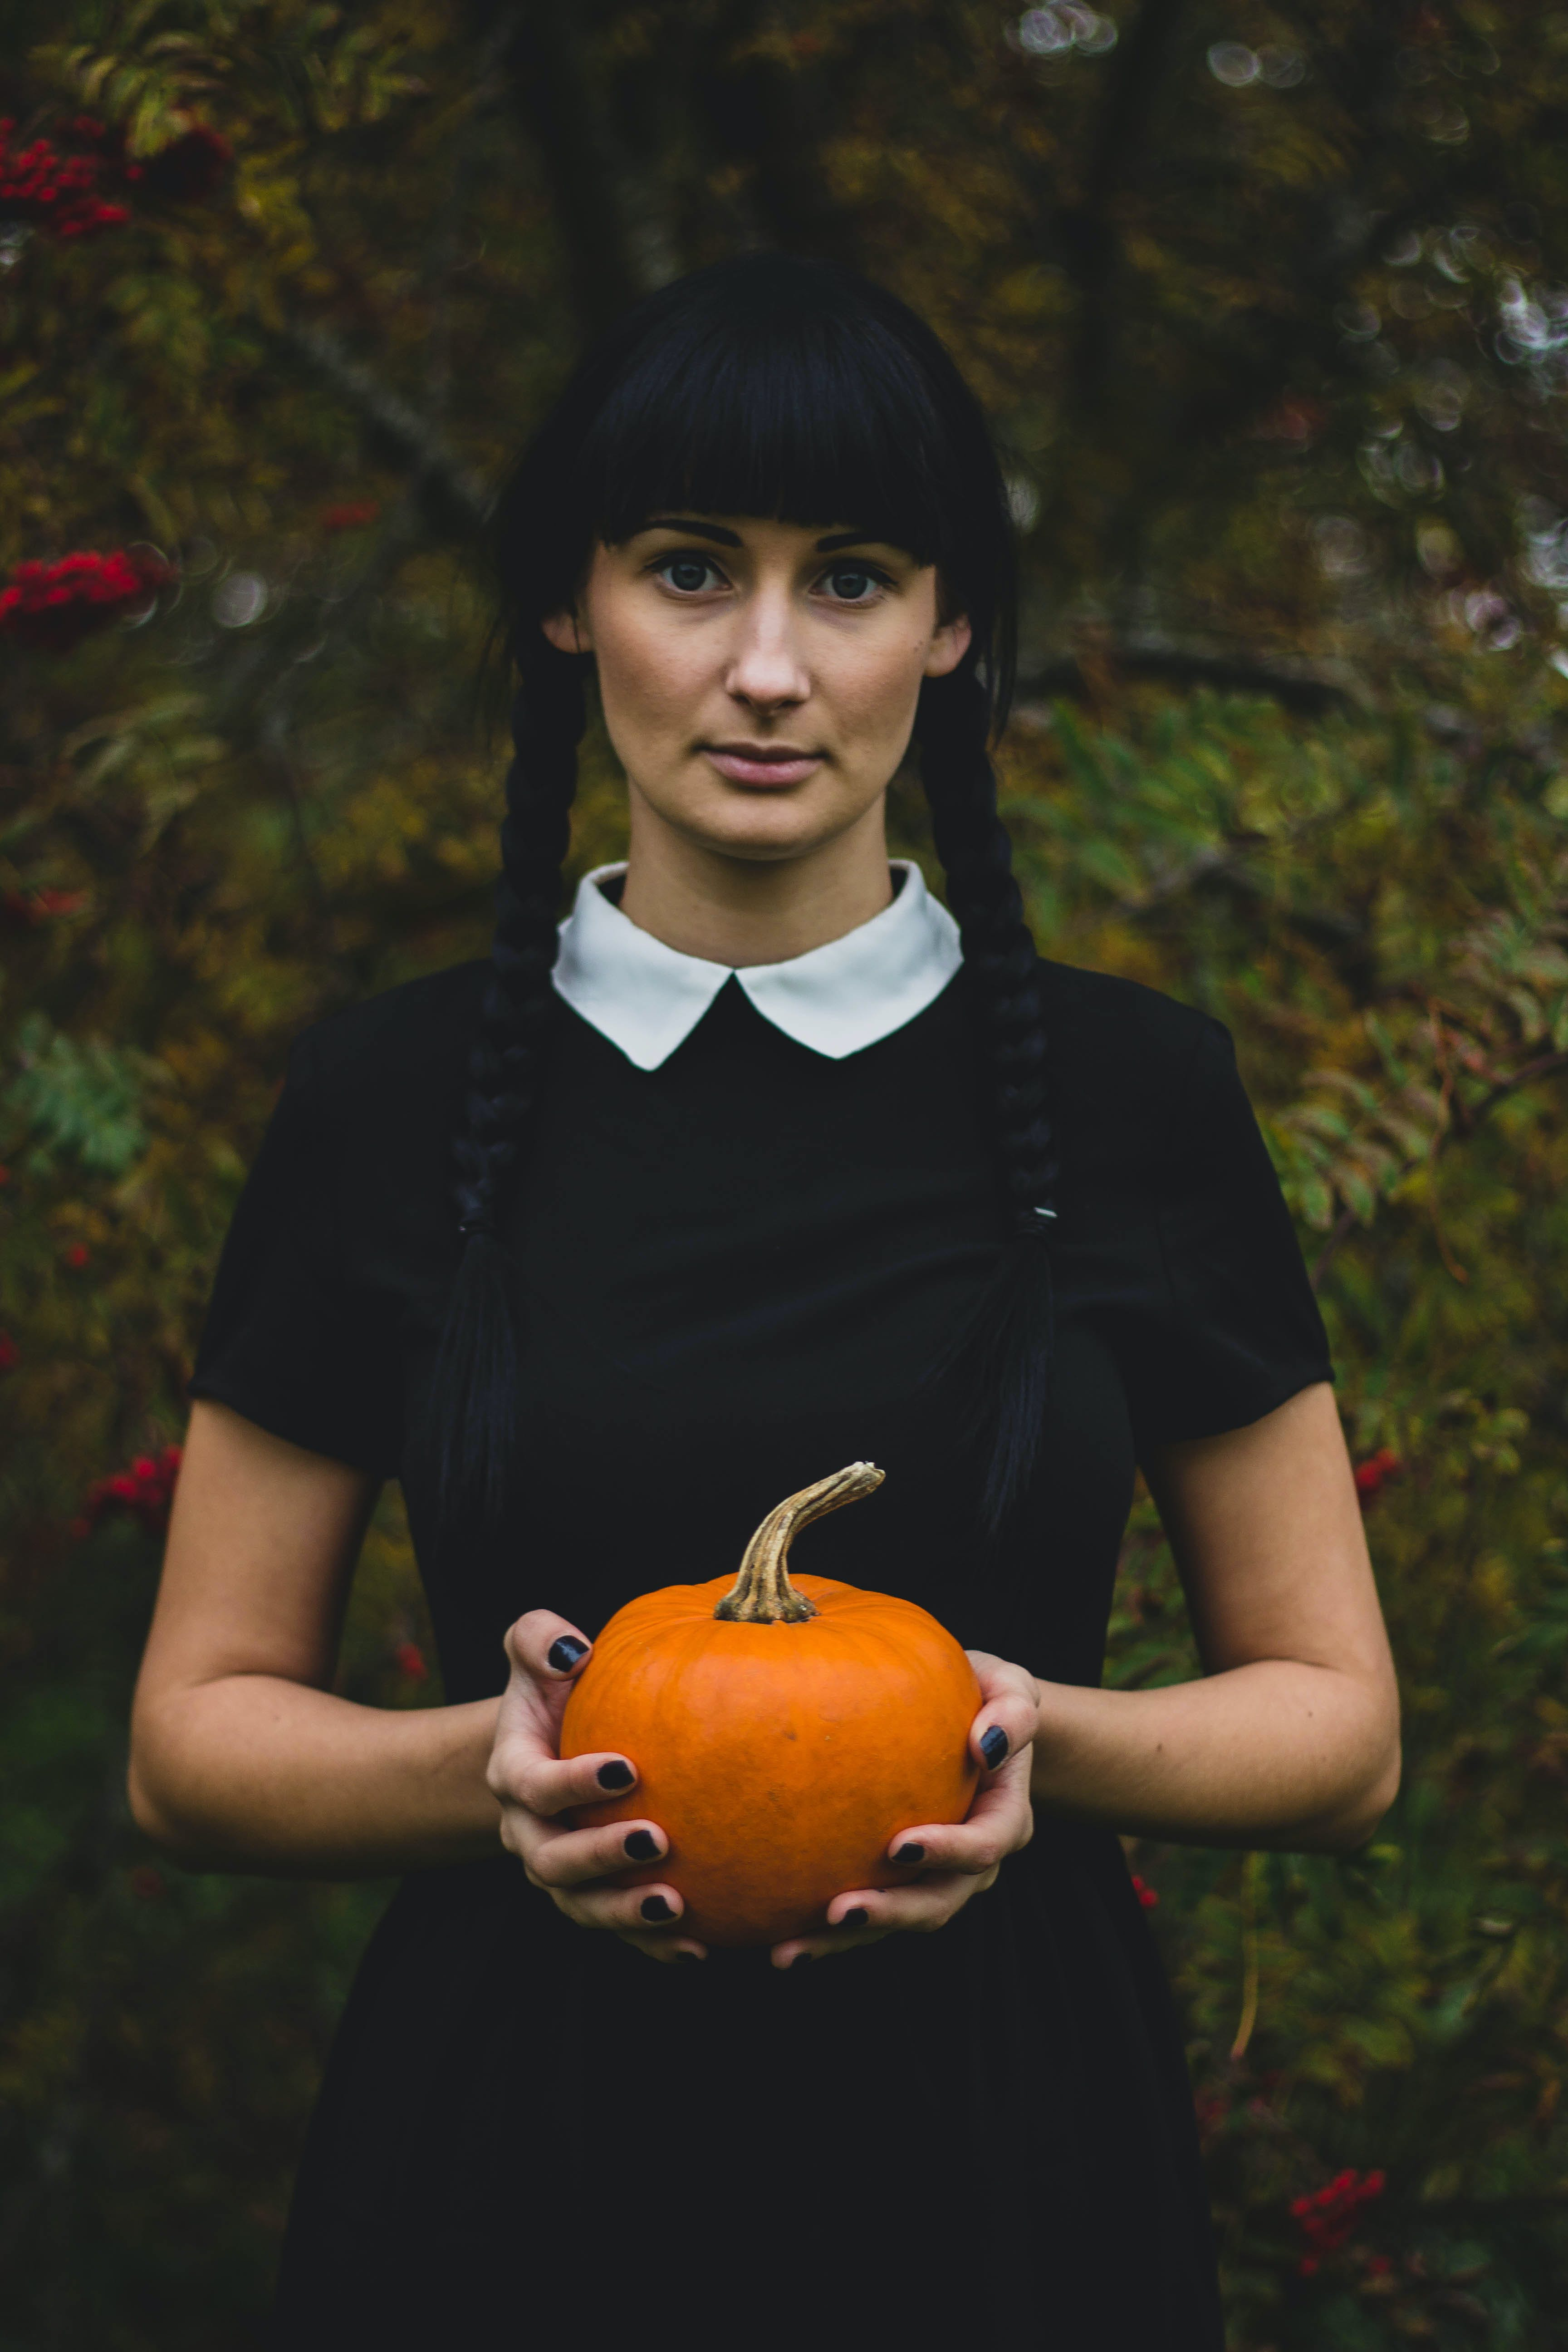 Woman in Black and White Collared Dress Holding Pumpkin during Daytime